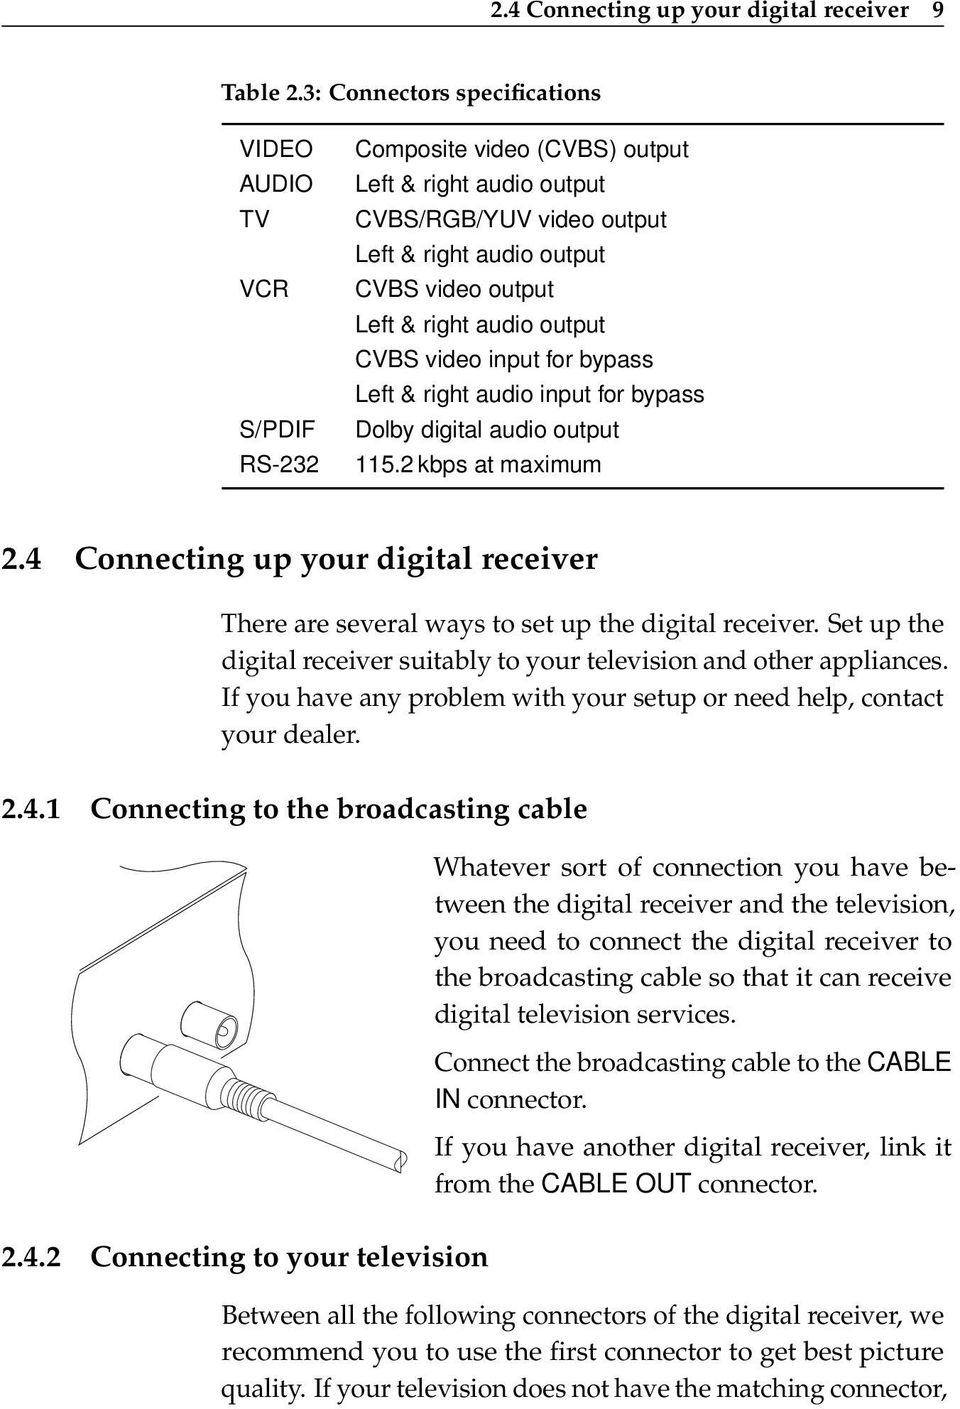 TOPFIELD TF 6000 COC  User Guide  Digital Cable Receiver CONAX - PDF